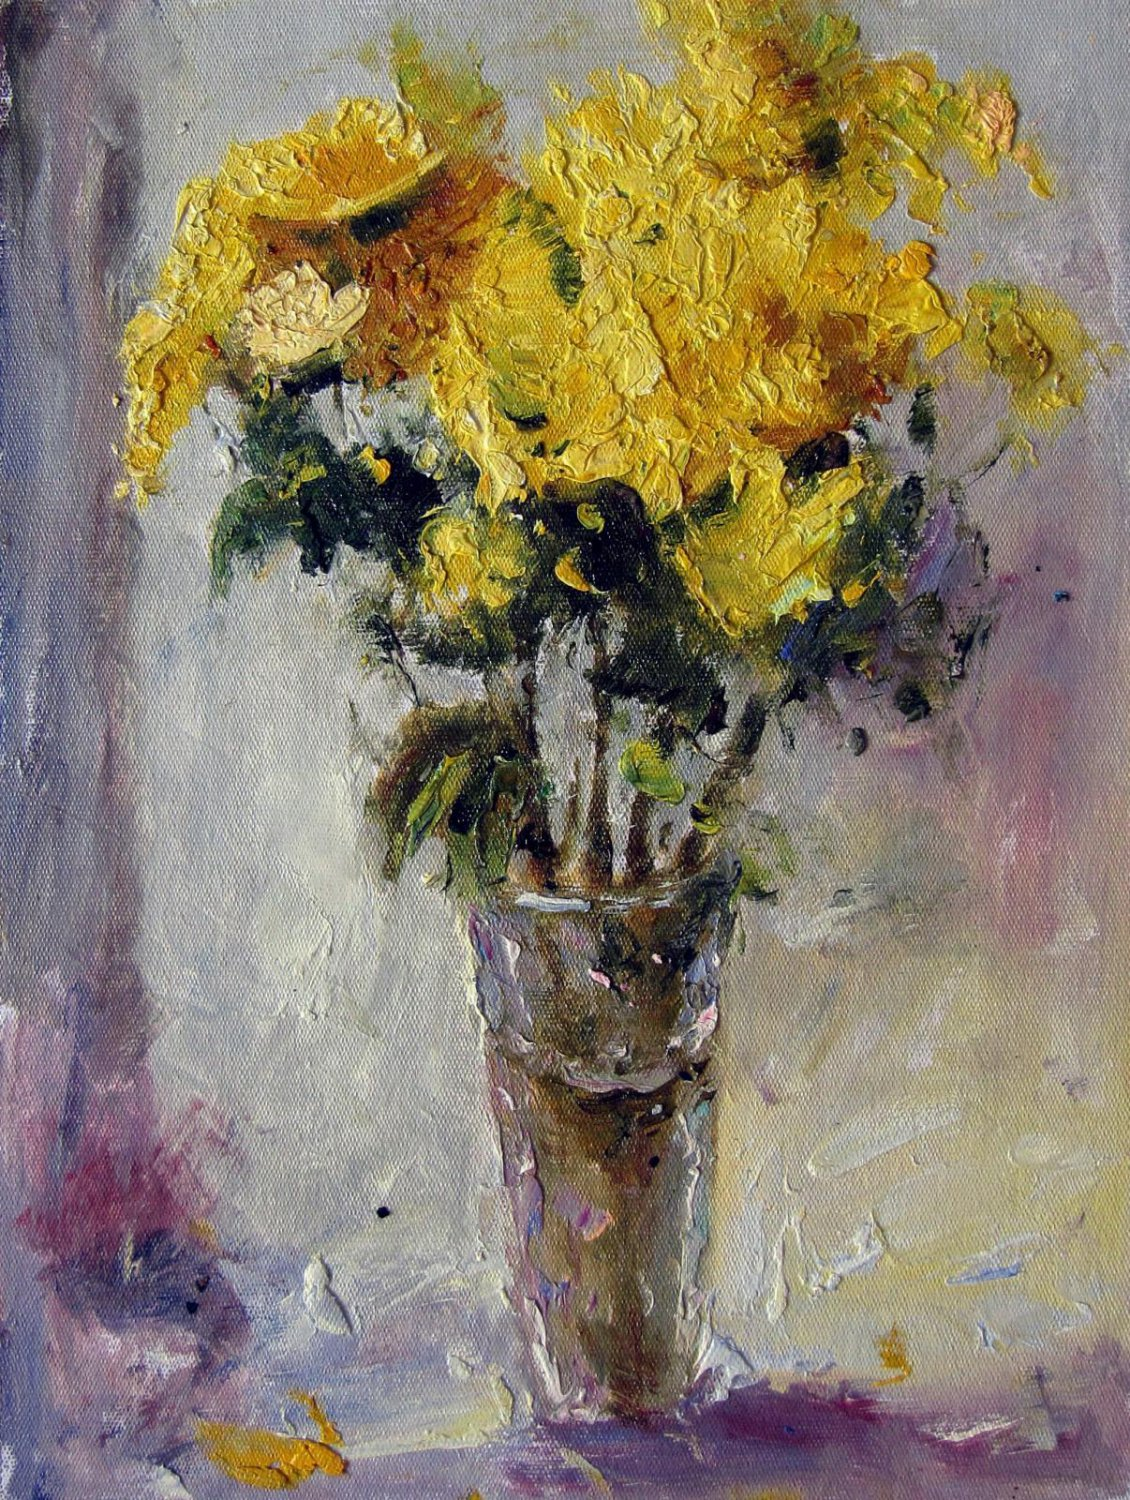 Vase Flower 12x16 in. stretched Oil Painting Canvas Art Wall Decor modern012